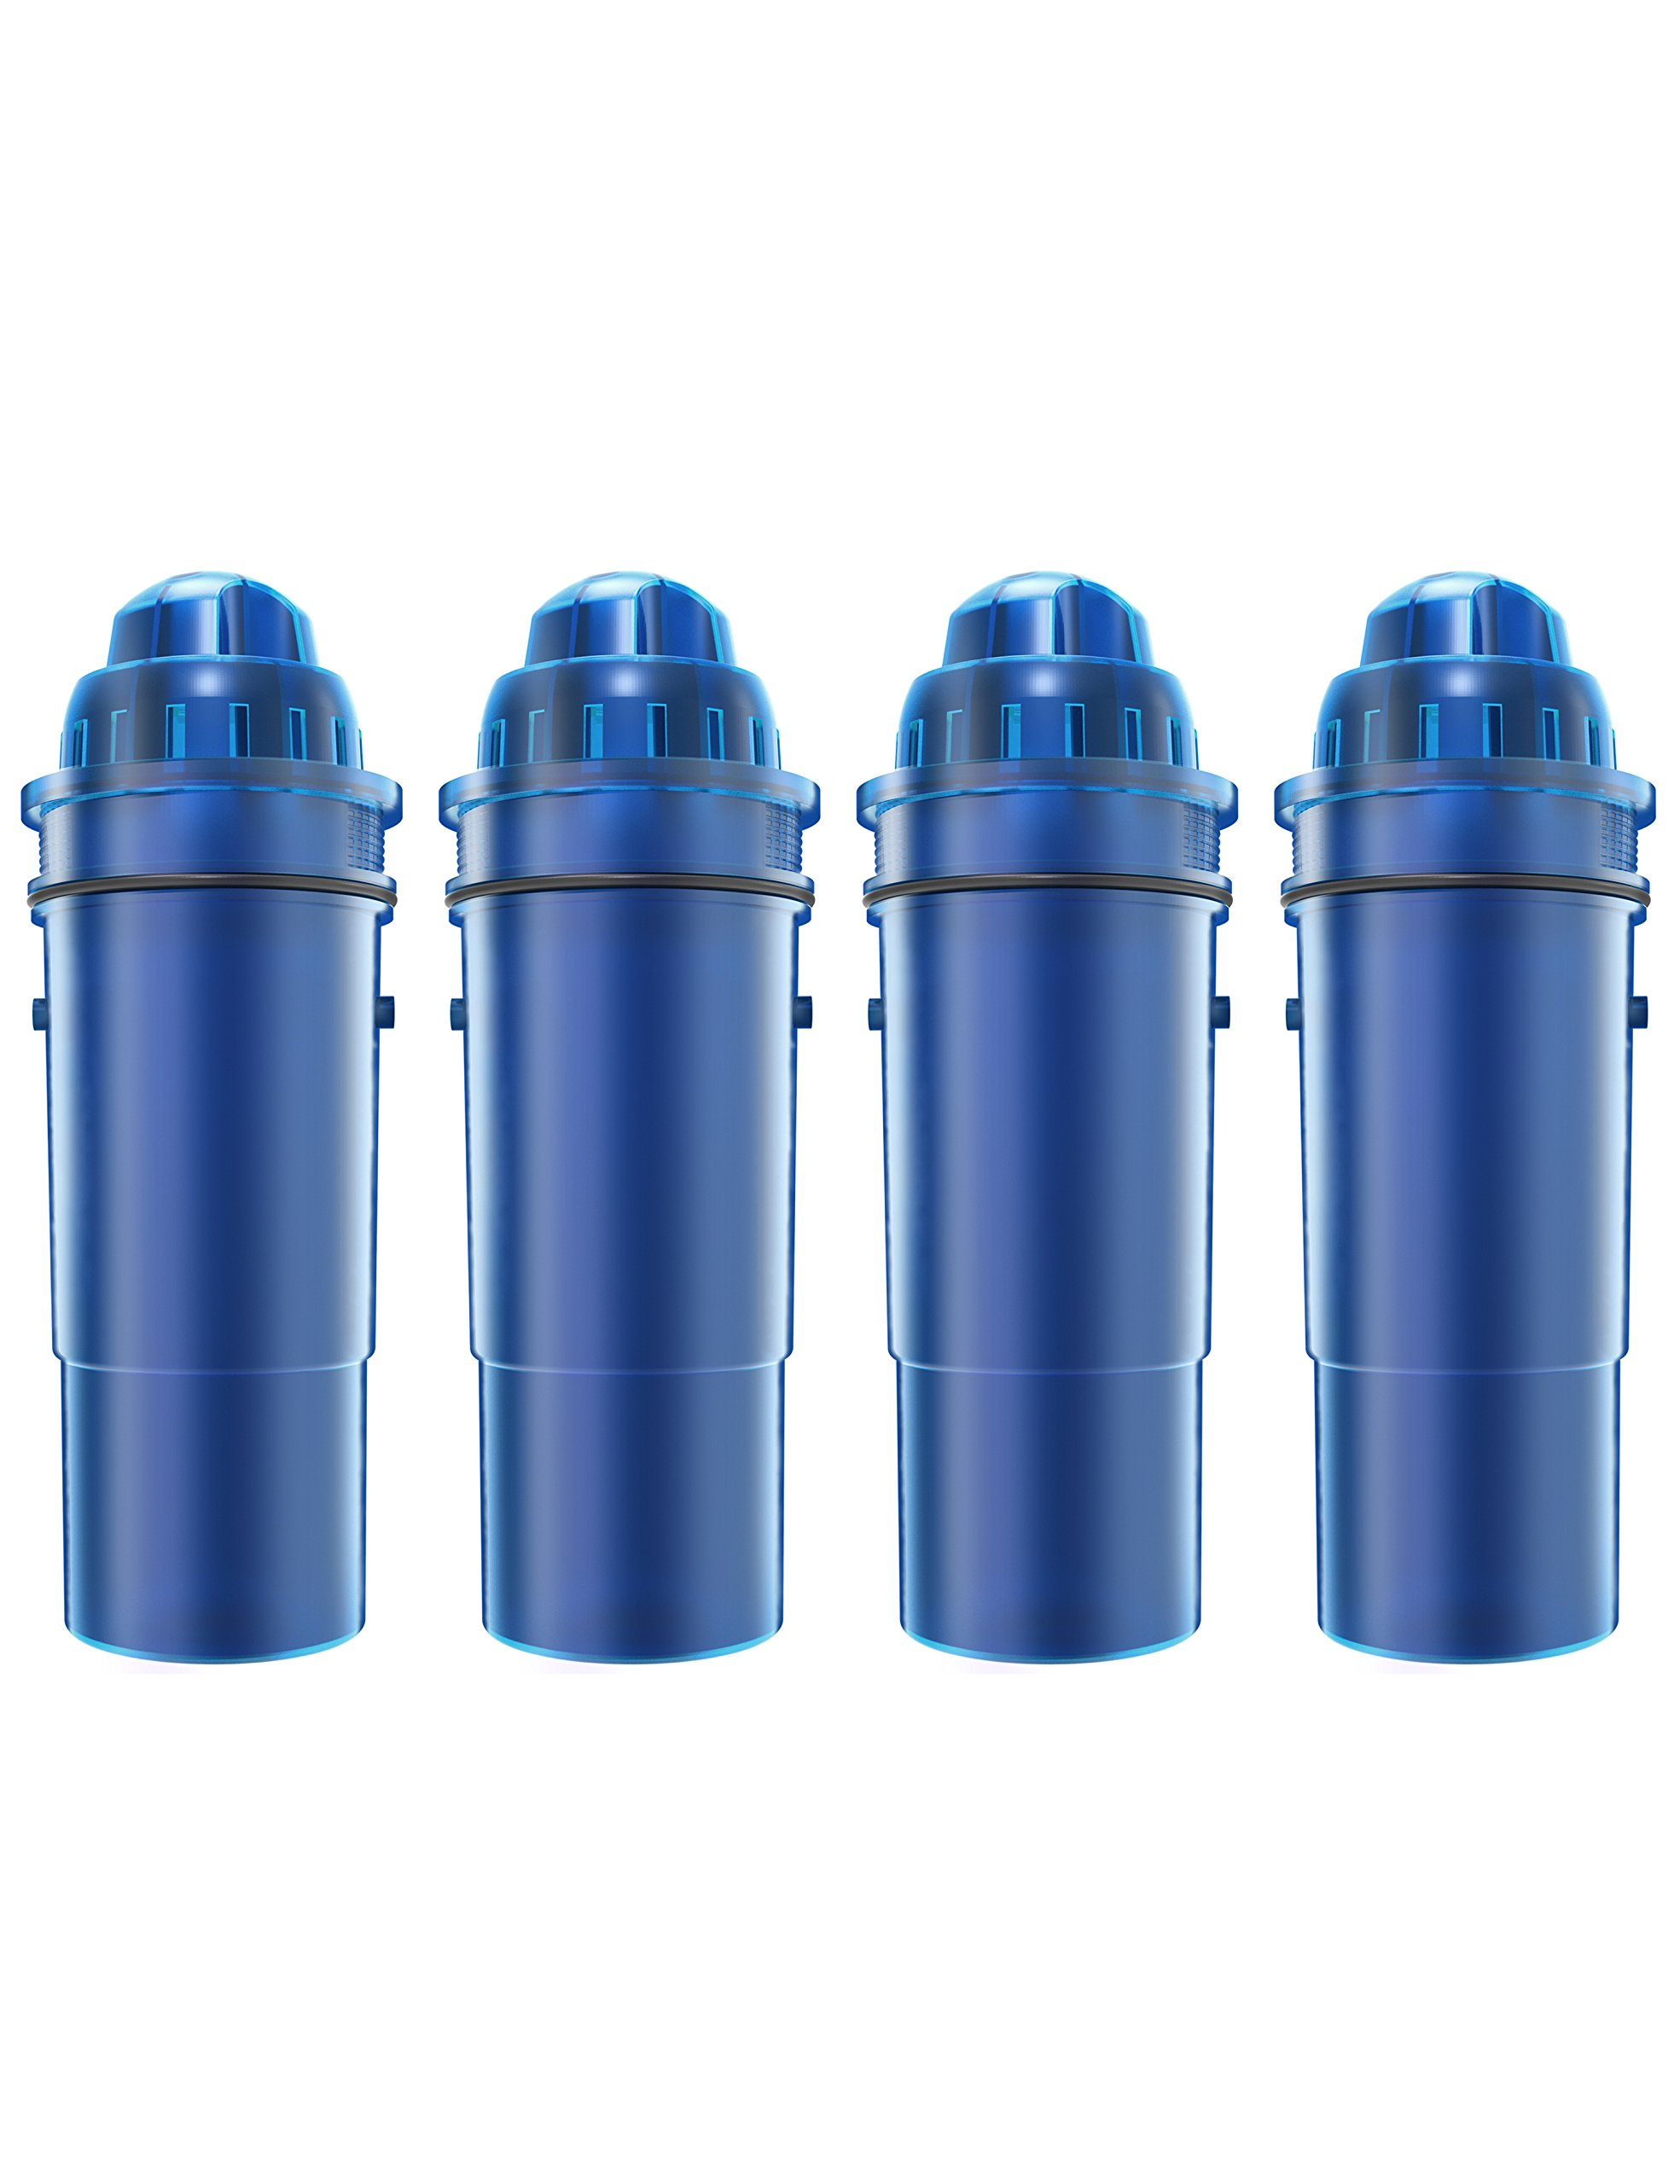 AQUACREST CRF-950Z Replacement Pitcher Water Filter, Compatible with Pur CRF-950Z Pitcher (Pack of 4)